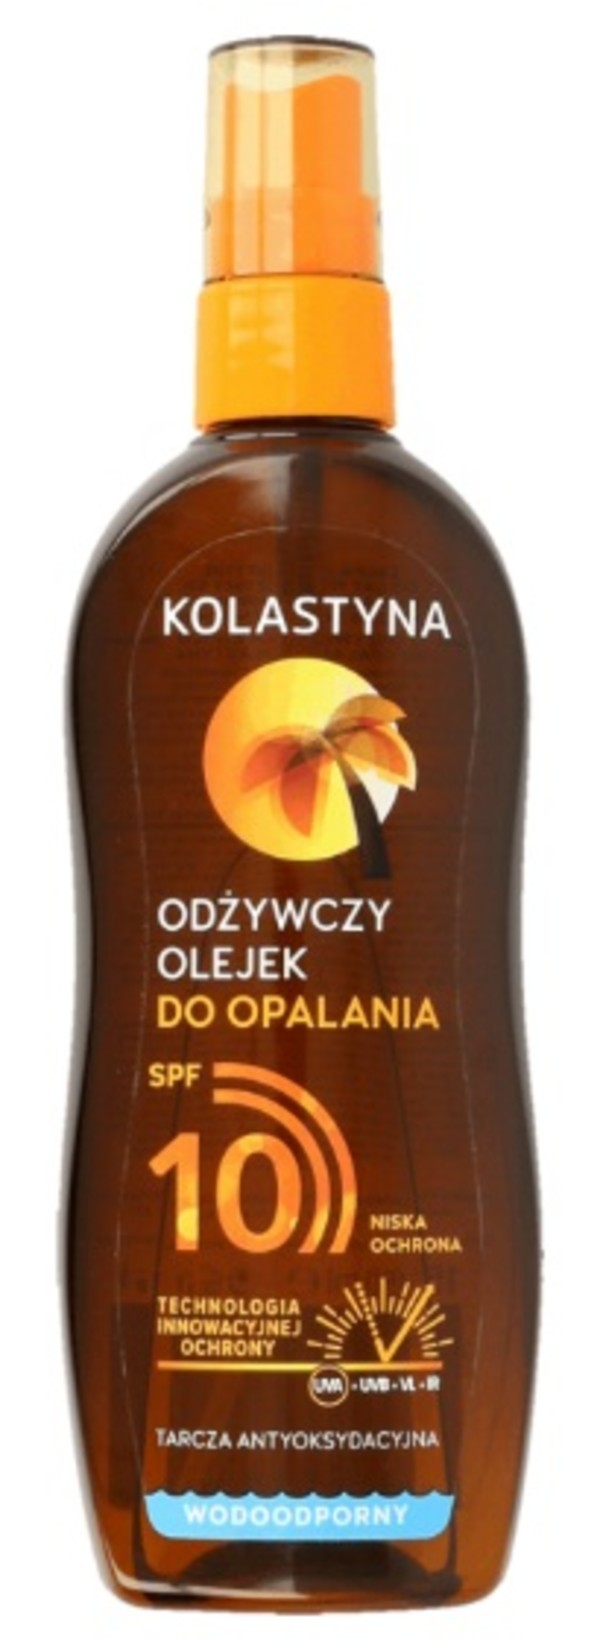 Olejek do opalania spray SPF10